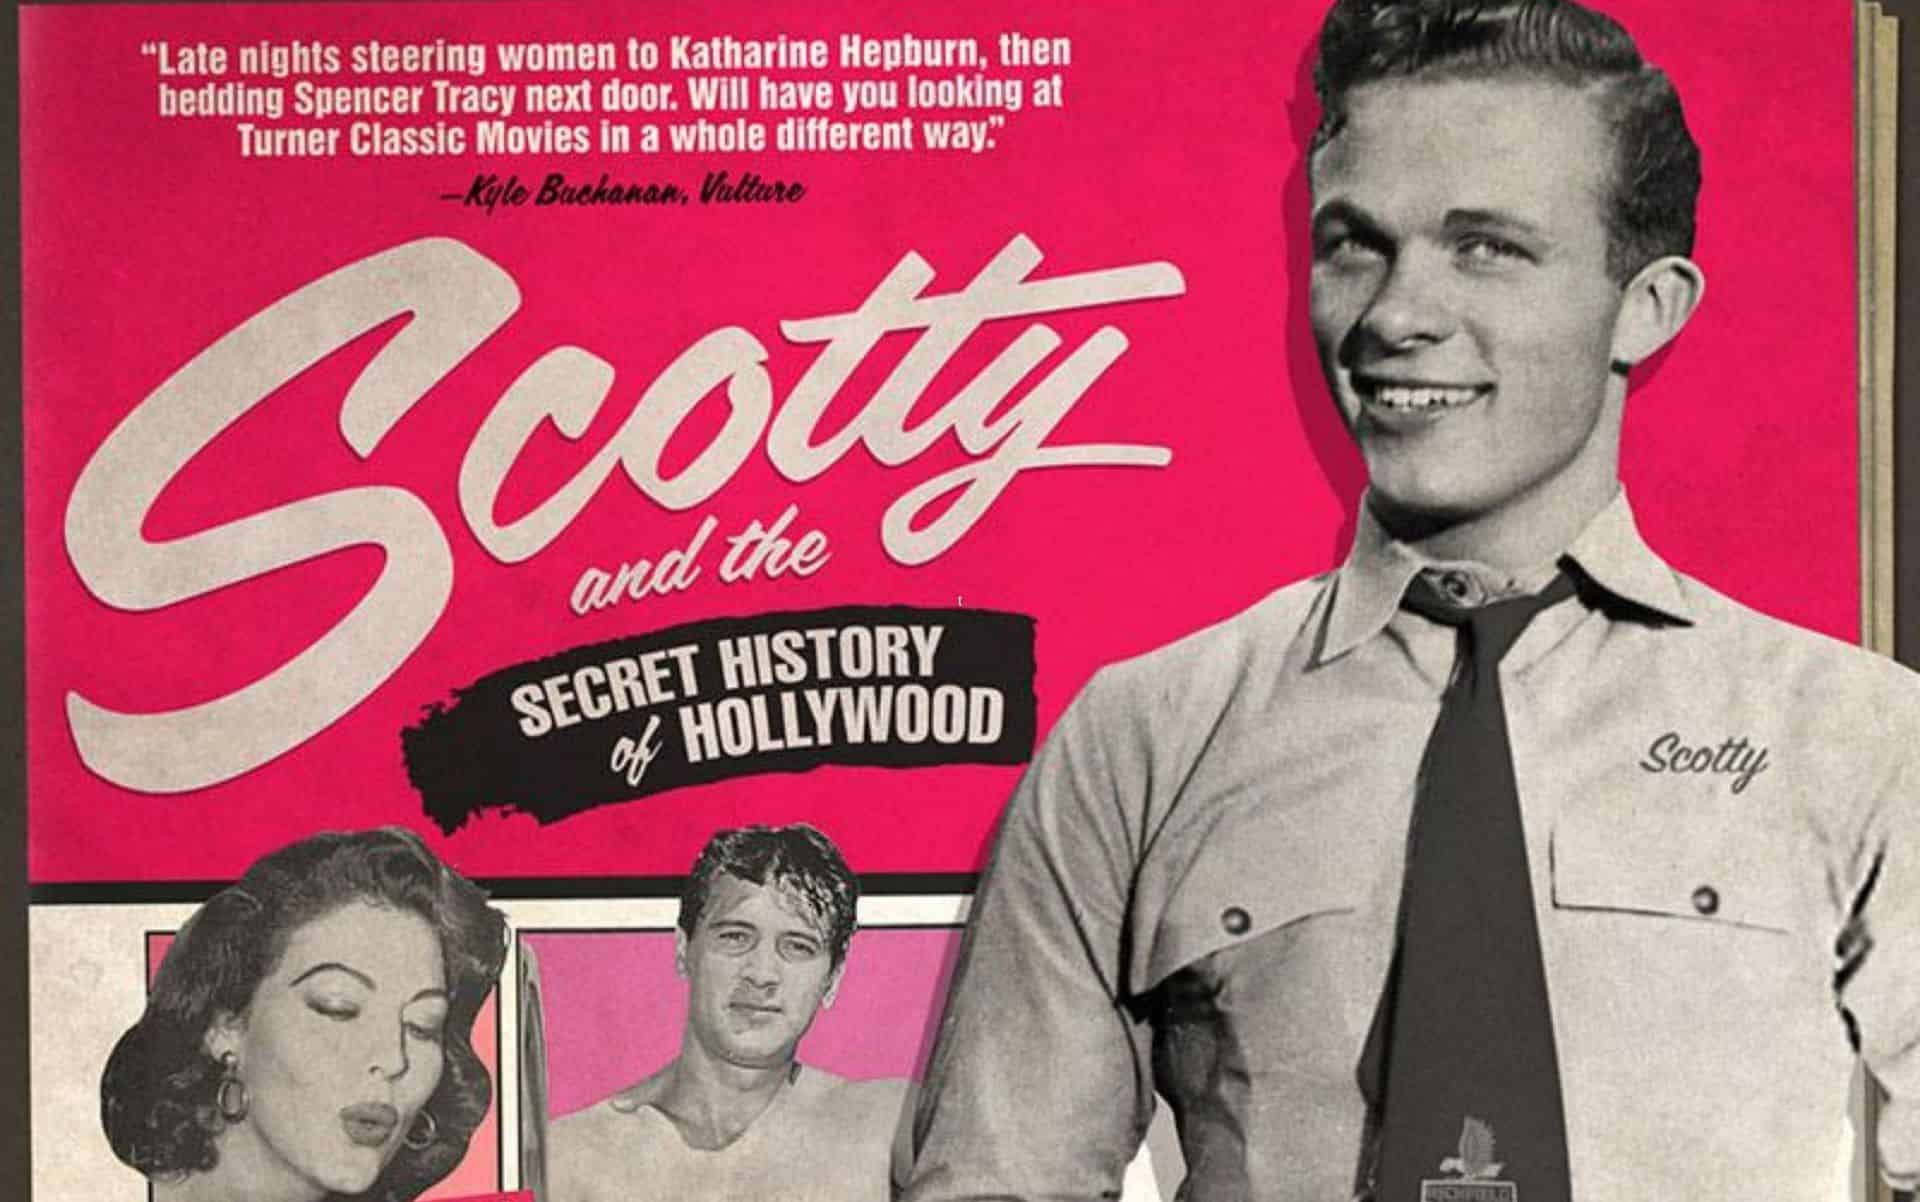 scotty and the secret history of hollywood luca guadagnino